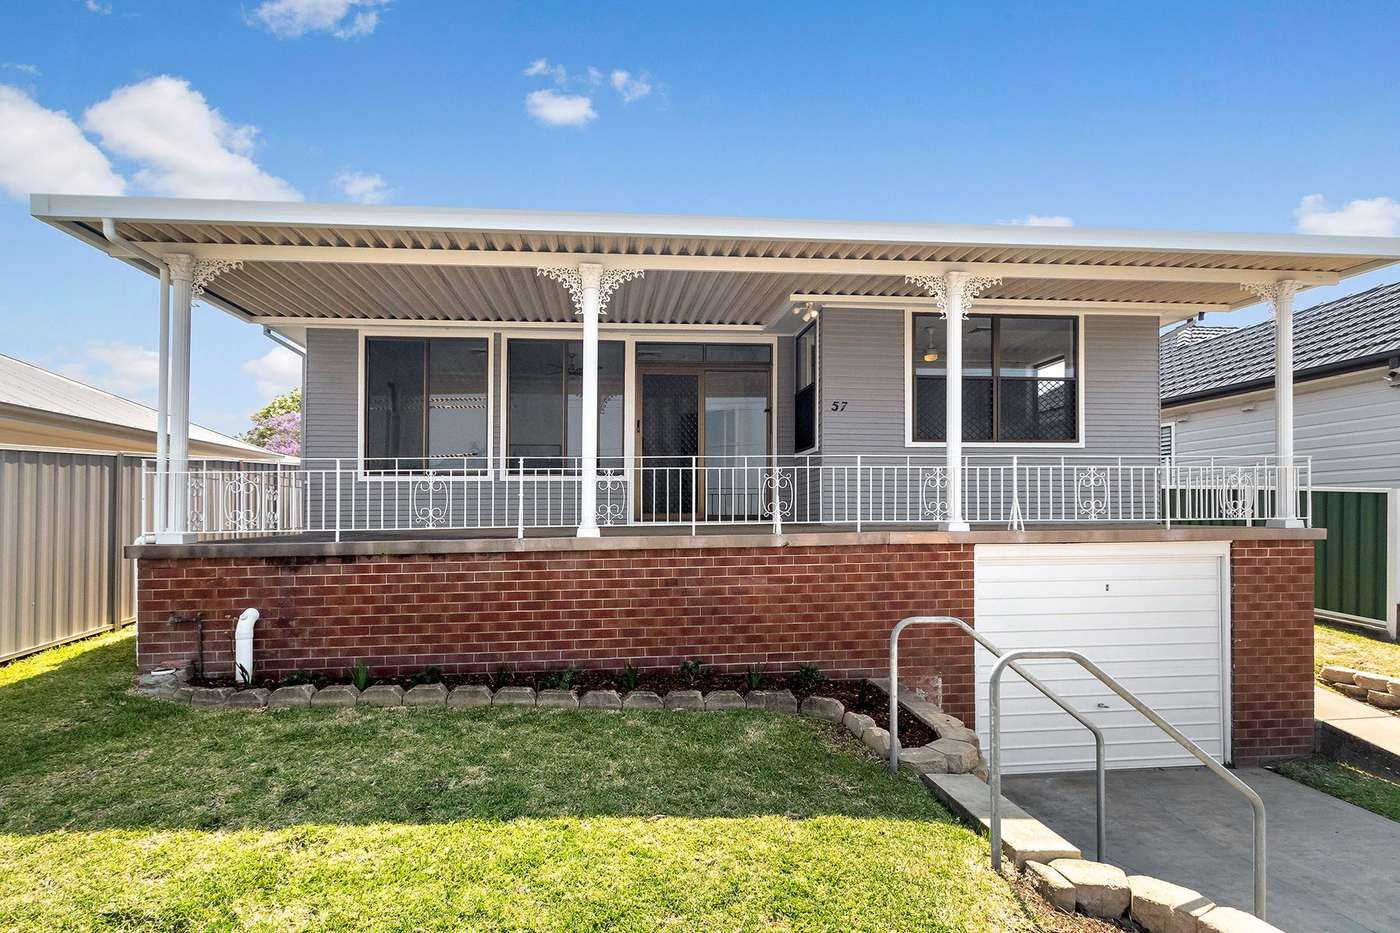 Main view of Homely house listing, 57 Morehead Street, North Lambton, NSW 2299